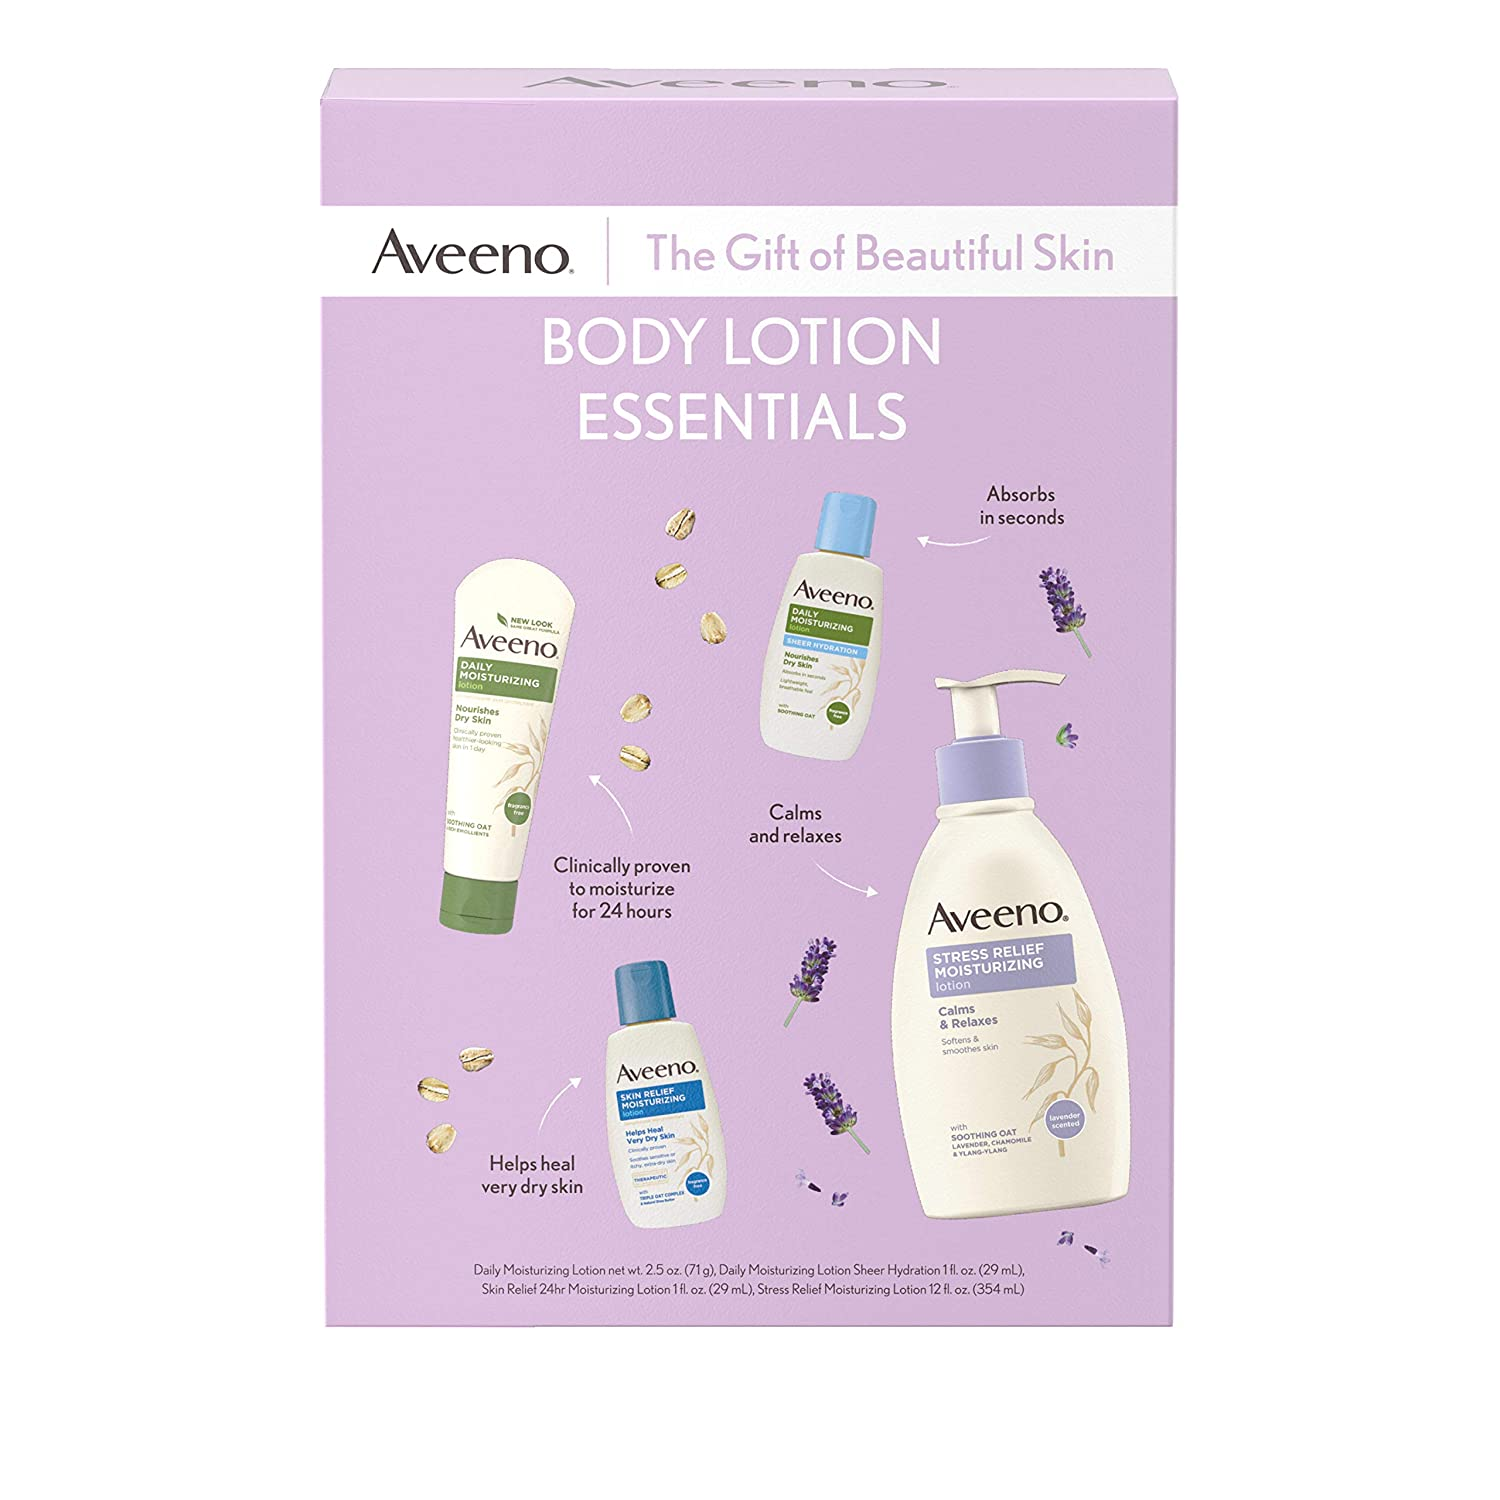 Aveeno Body Lotion Essentials Skincare Gift Set